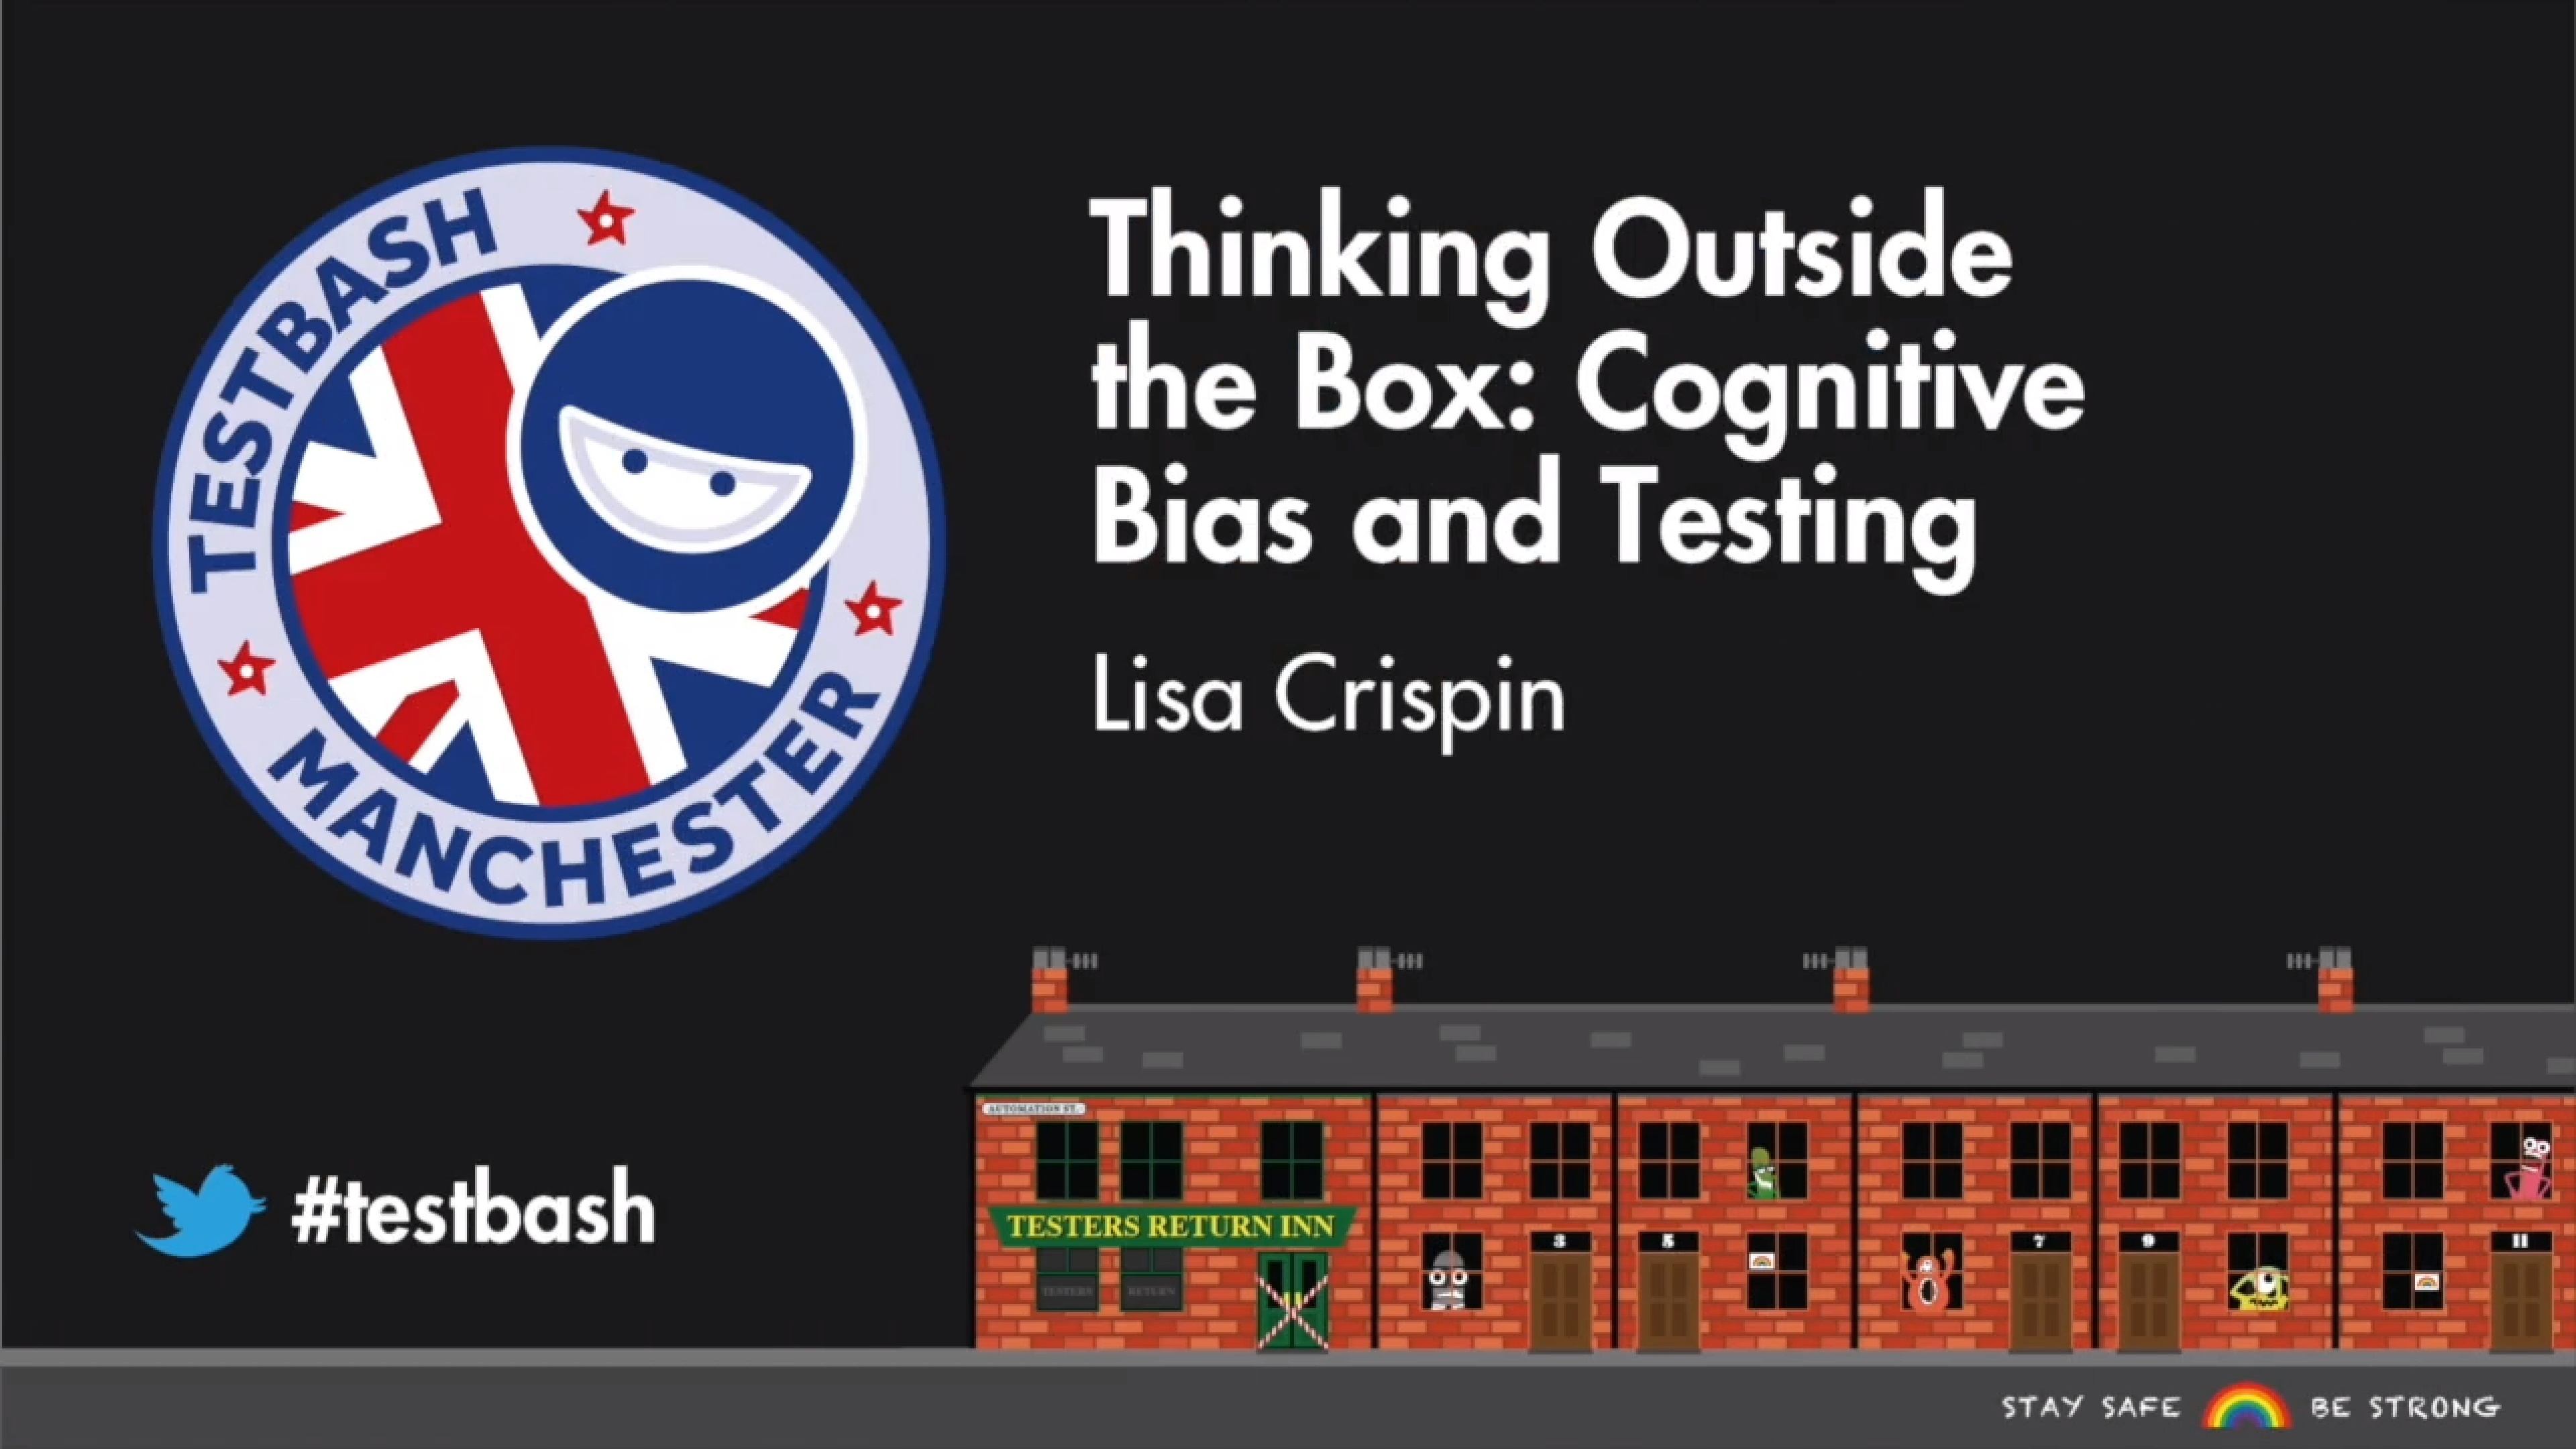 Thinking Outside the Box: Cognitive Bias and Testing - Lisa Crispin